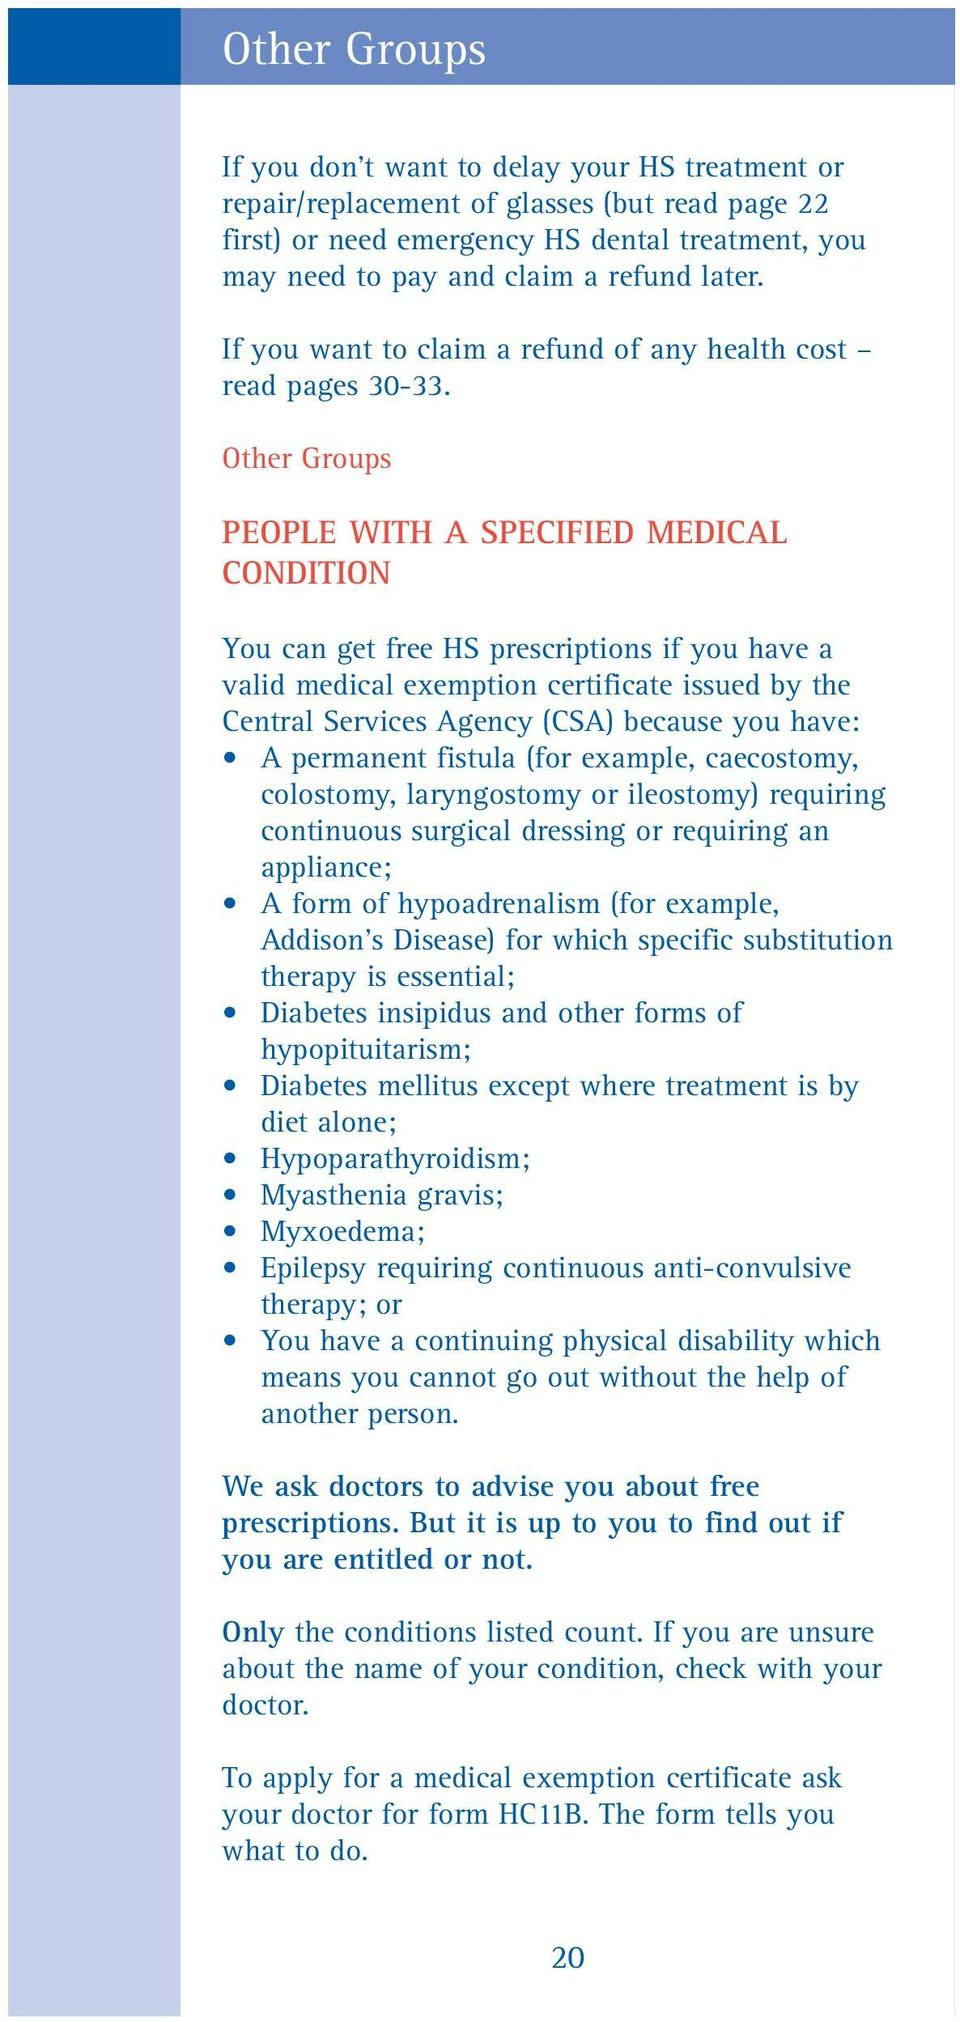 Other Groups PEOPLE WITH A SPECIFIED MEDICAL CONDITION You can get free HS prescriptions if you have a valid medical exemption certificate issued by the Central Services Agency (CSA) because you